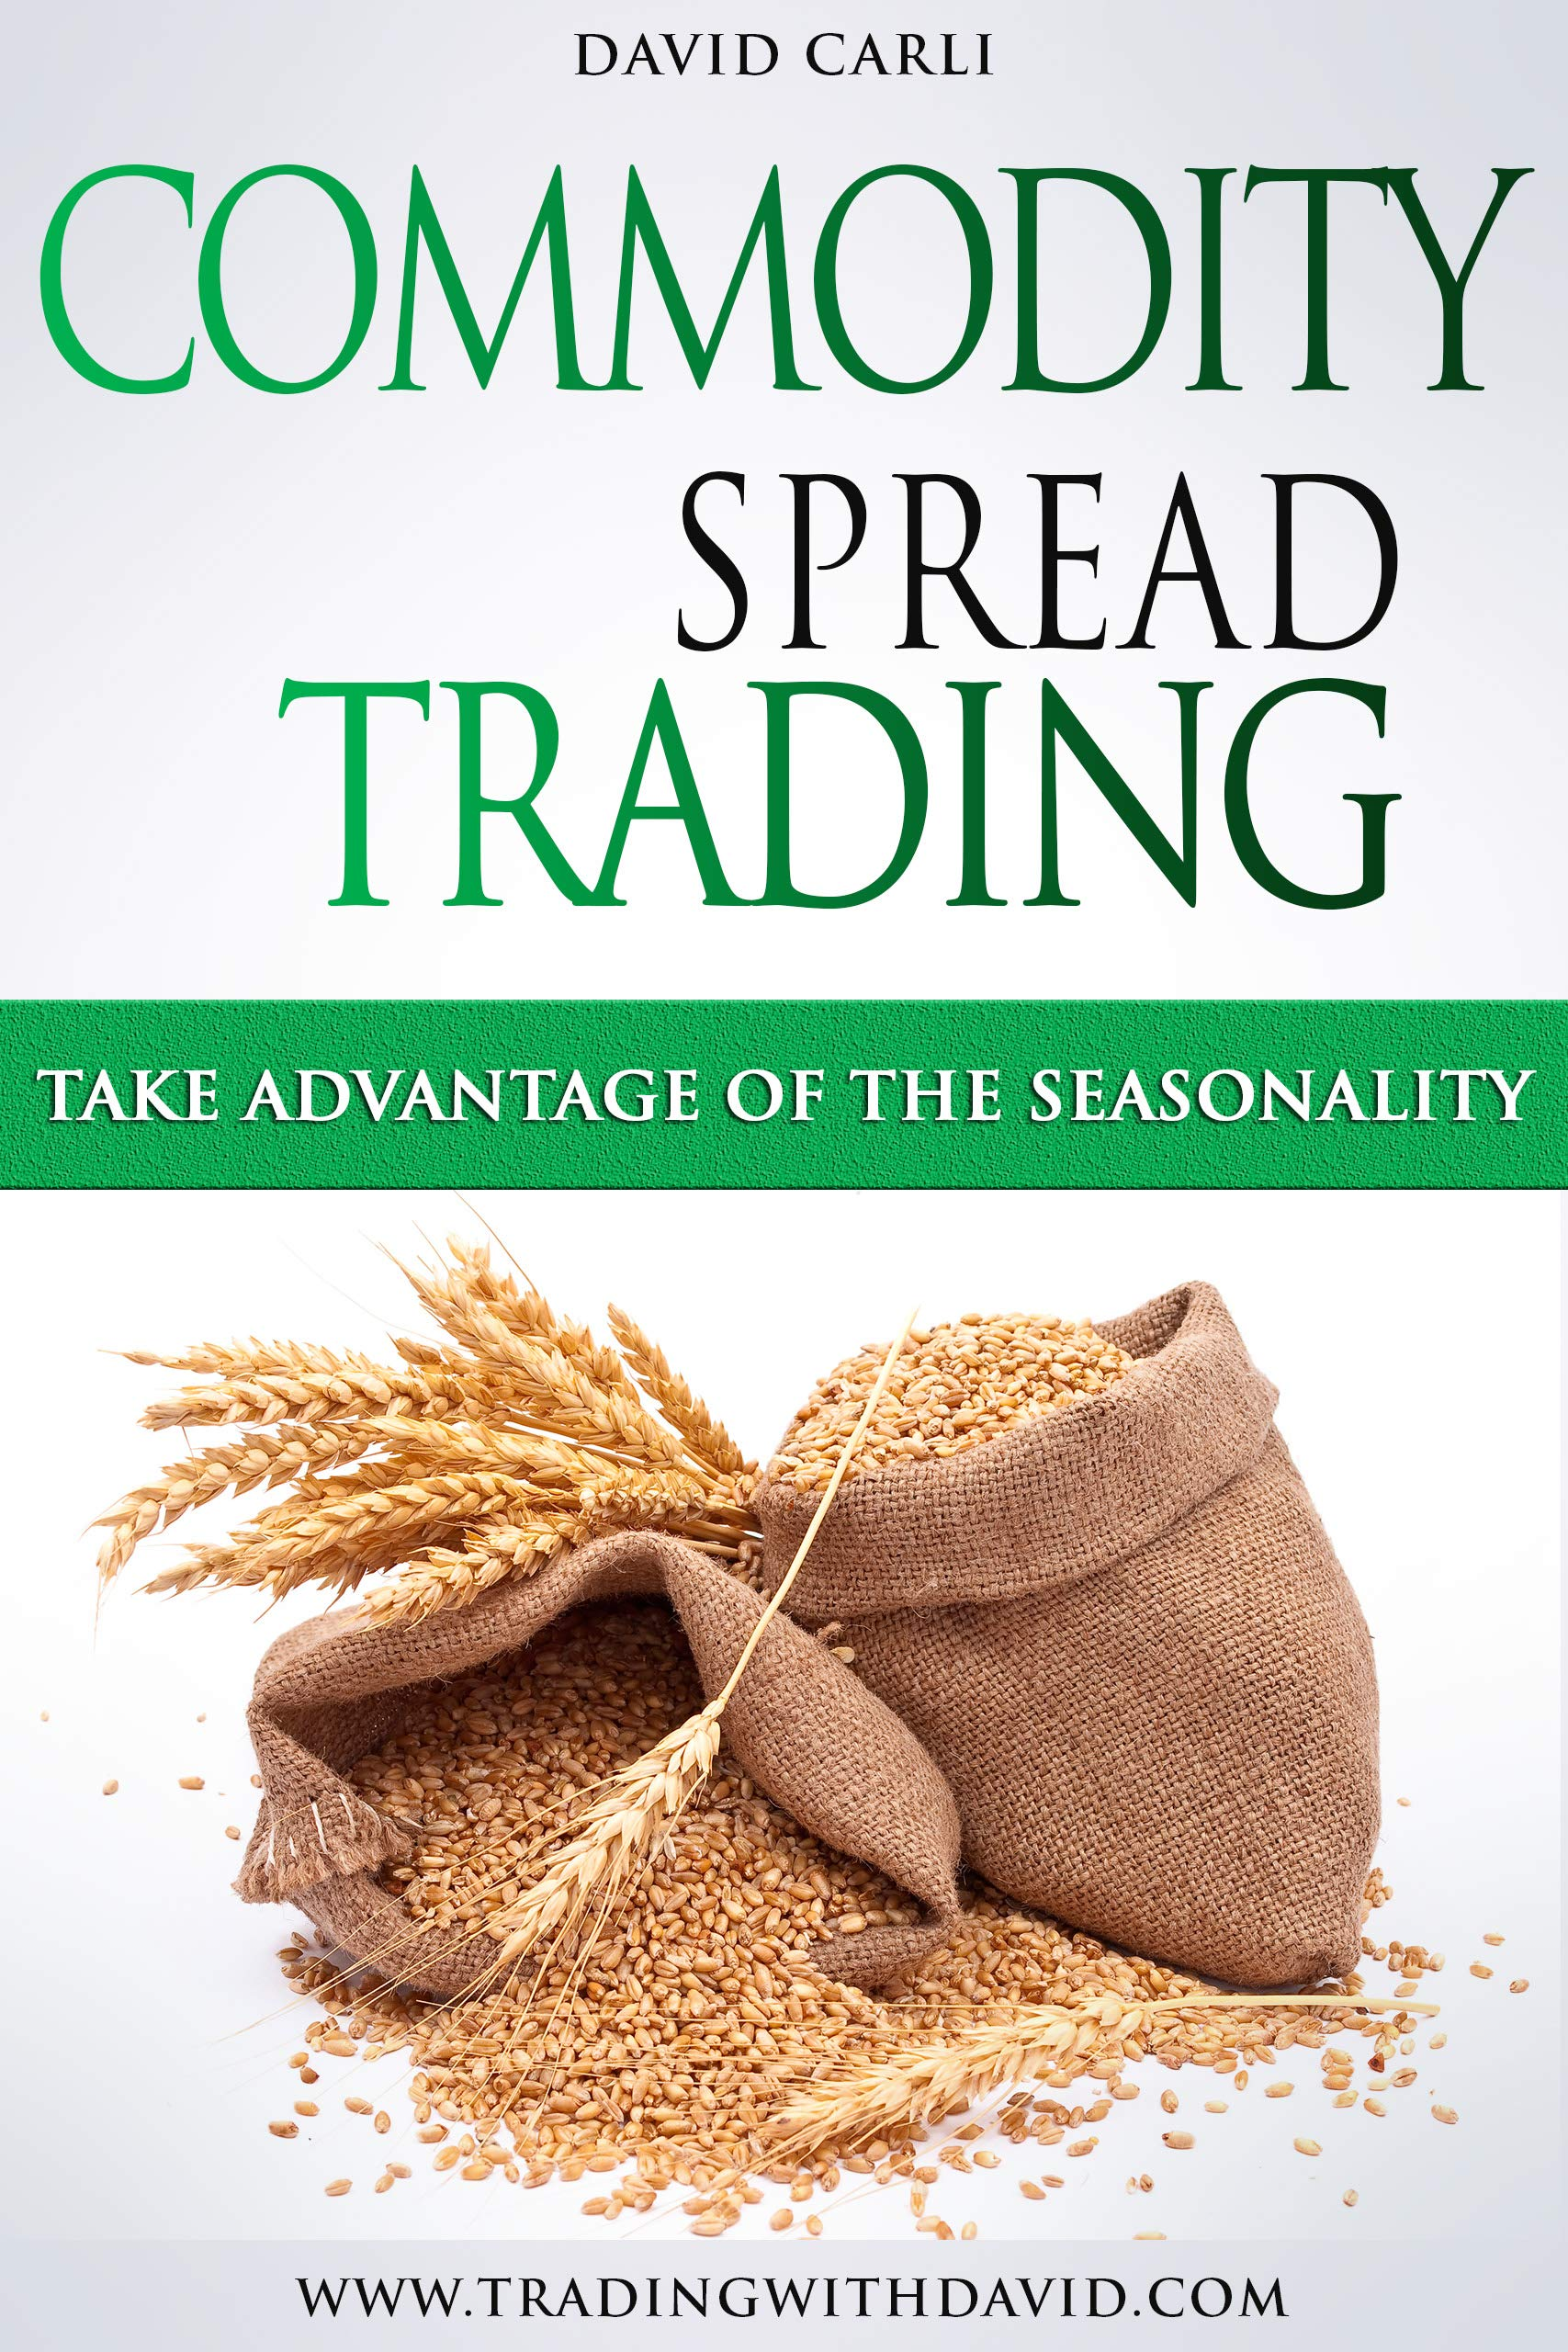 eBook Commodity Spread Trading - Take Advantage of the Seasonality. Volume 1: Learn Spread Trading, the Best Way to Trade Commodity Futures; eBook for Experienced Traders and Beginners.